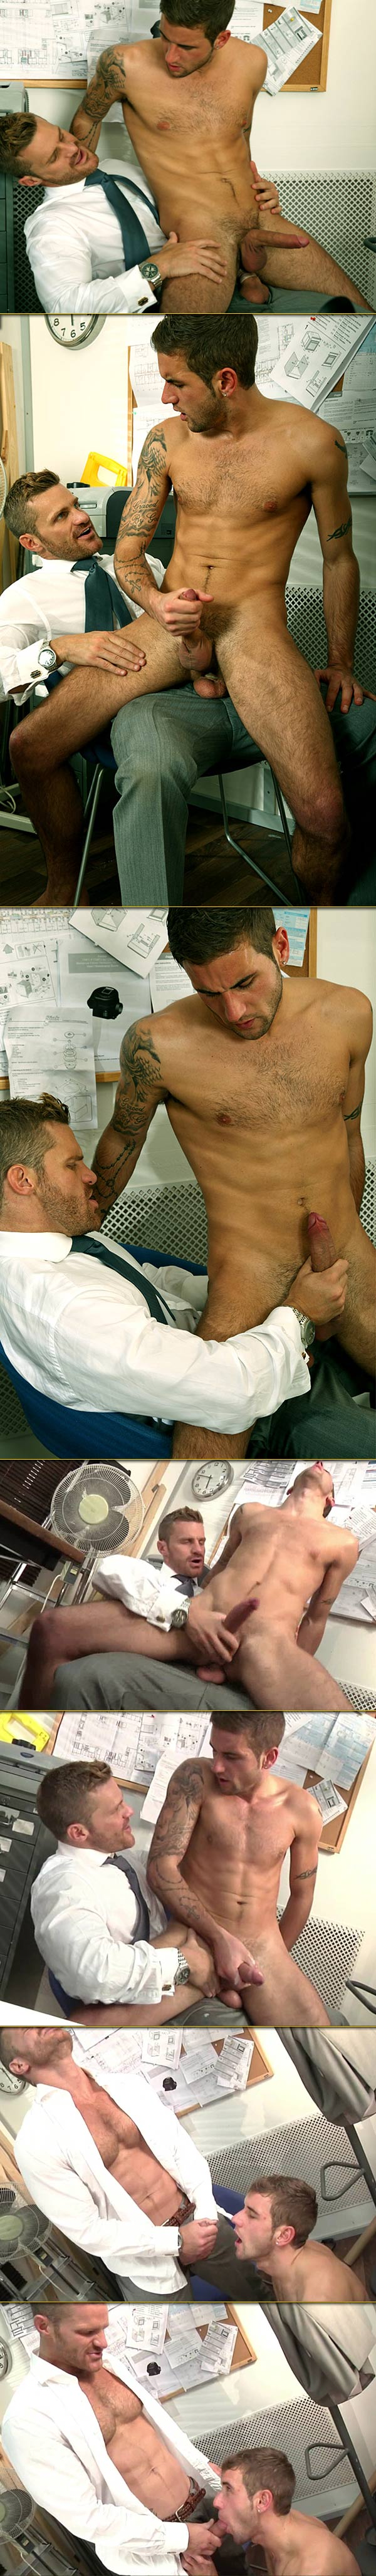 On Site (Landon Conrad & Dan Broughton) on MenAtPlay